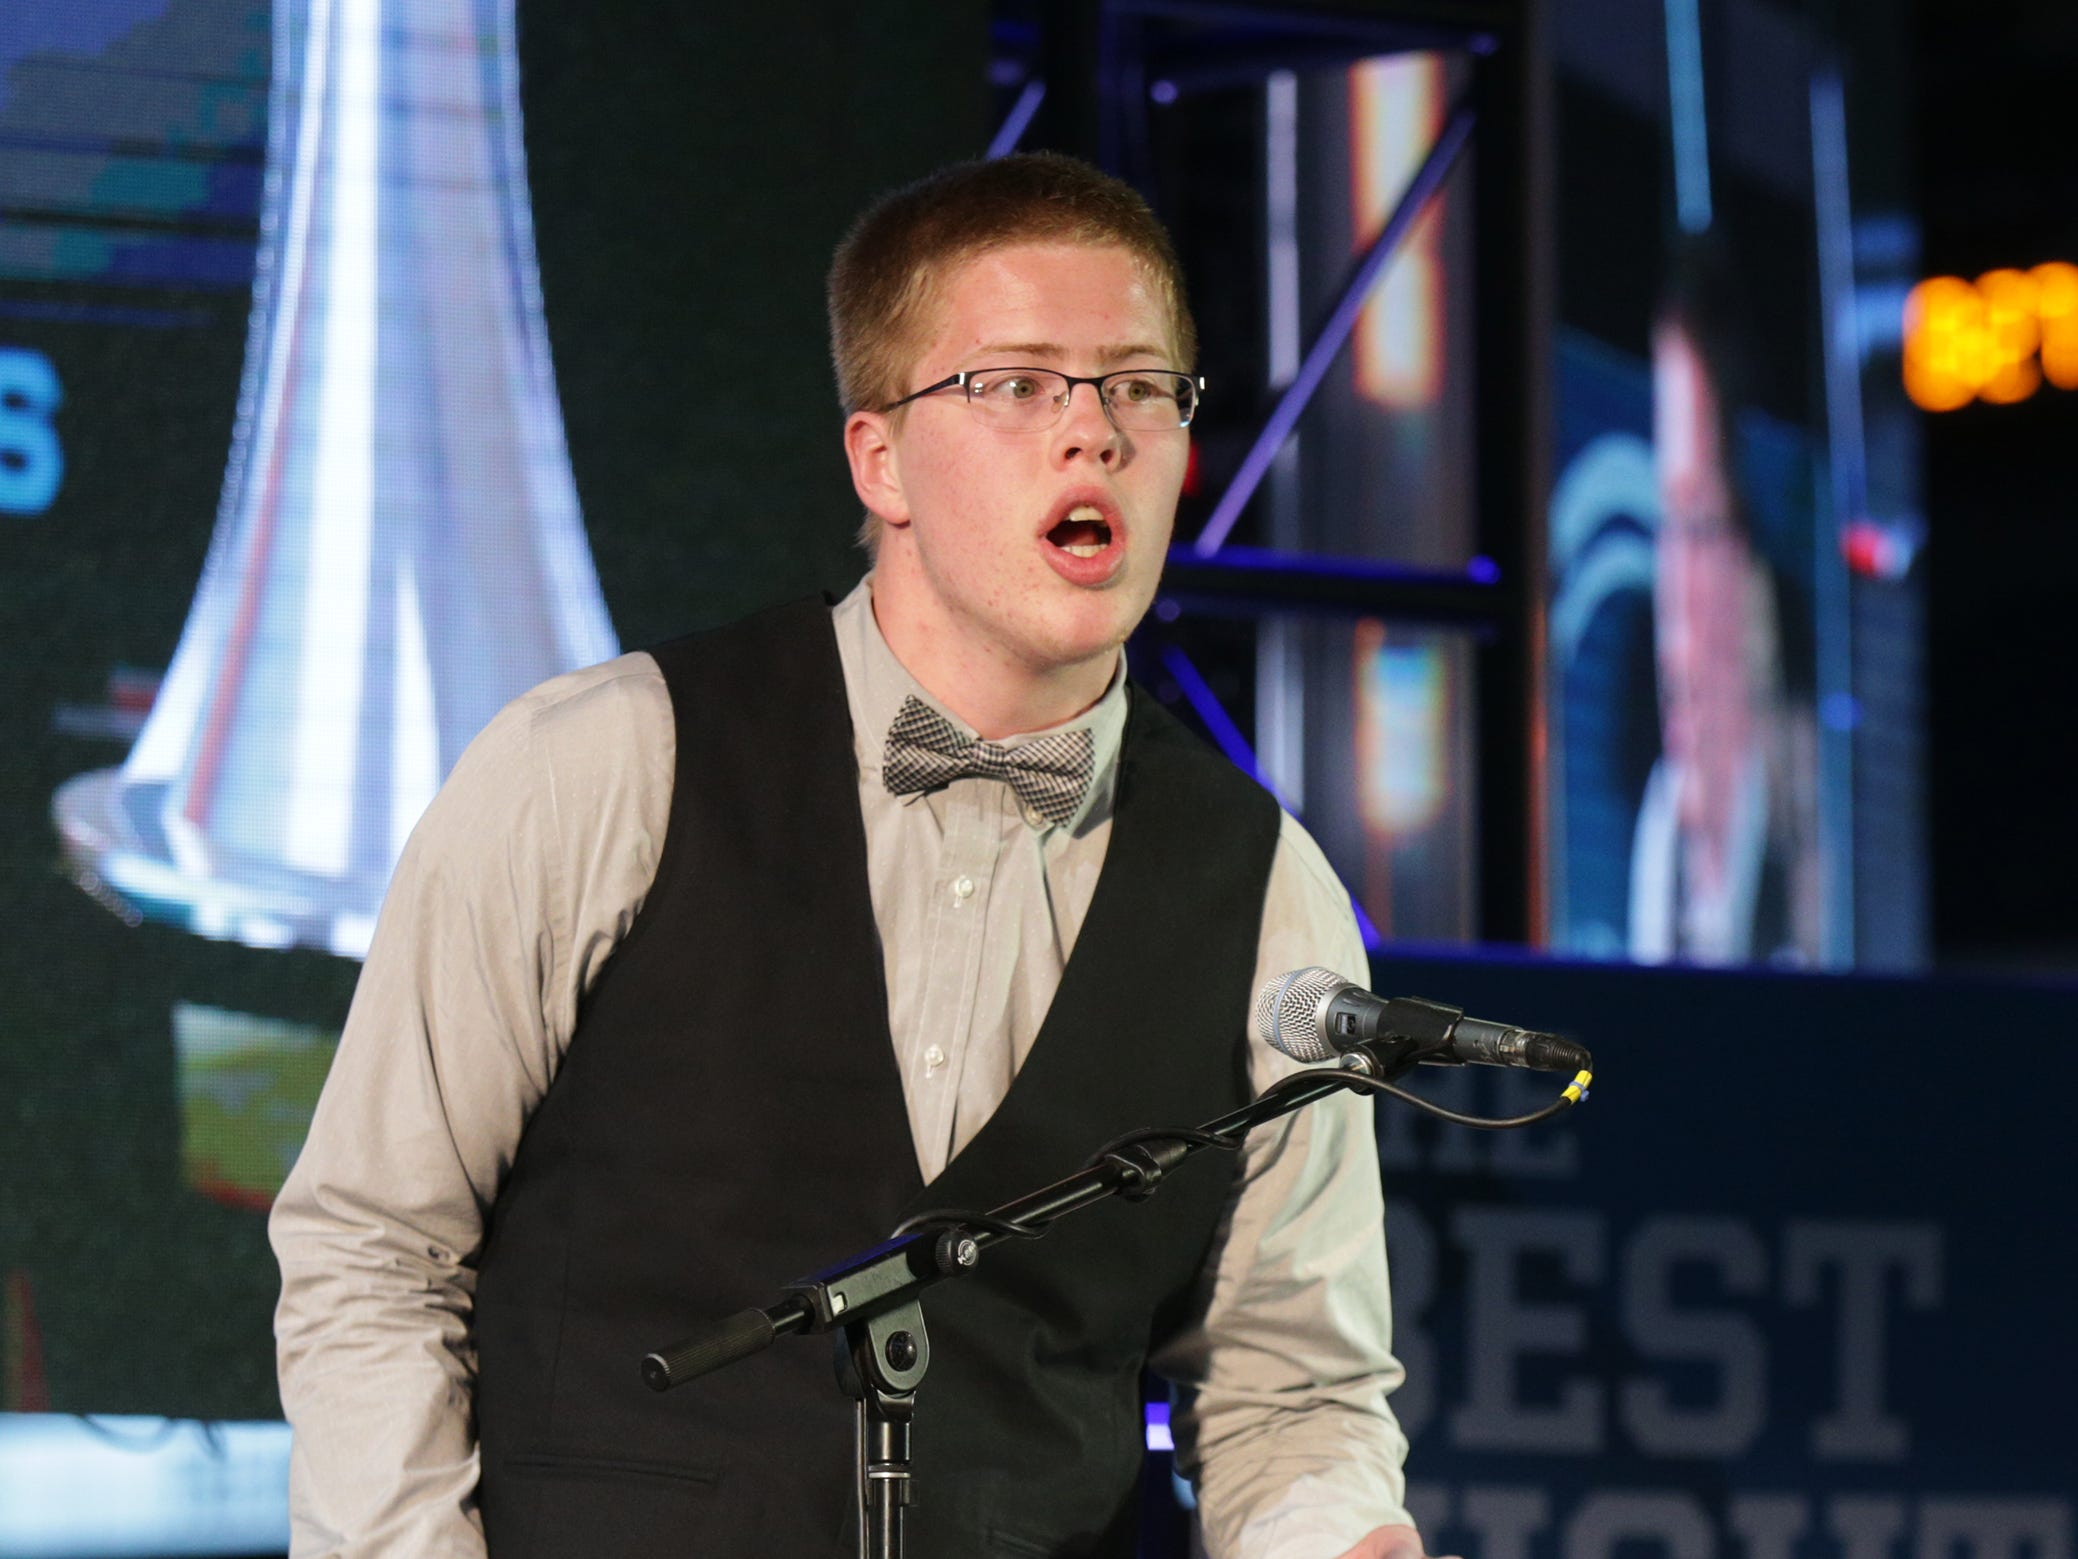 Columbus North High School basketball standout Josh Speidel presented the award for Courage Award. IndyStar held the Indiana Sports Awards, Thursday, April 28, 2016 at Lucas Oil Stadium where they honored the outstanding accomplishments of 200+ high school athletes in 28 sports. The featured guest speaker was Indianapolis Colts' quarterback Andrew Luck. The evening's host was WNBA Indiana Fever Head Coach Stephanie White. Celebrity presenters included Indiana Fever All-Star Tamika Catchings, IndyCar driver Ed Carpenter and IndyStar's own sports columnist Gregg Doyel.